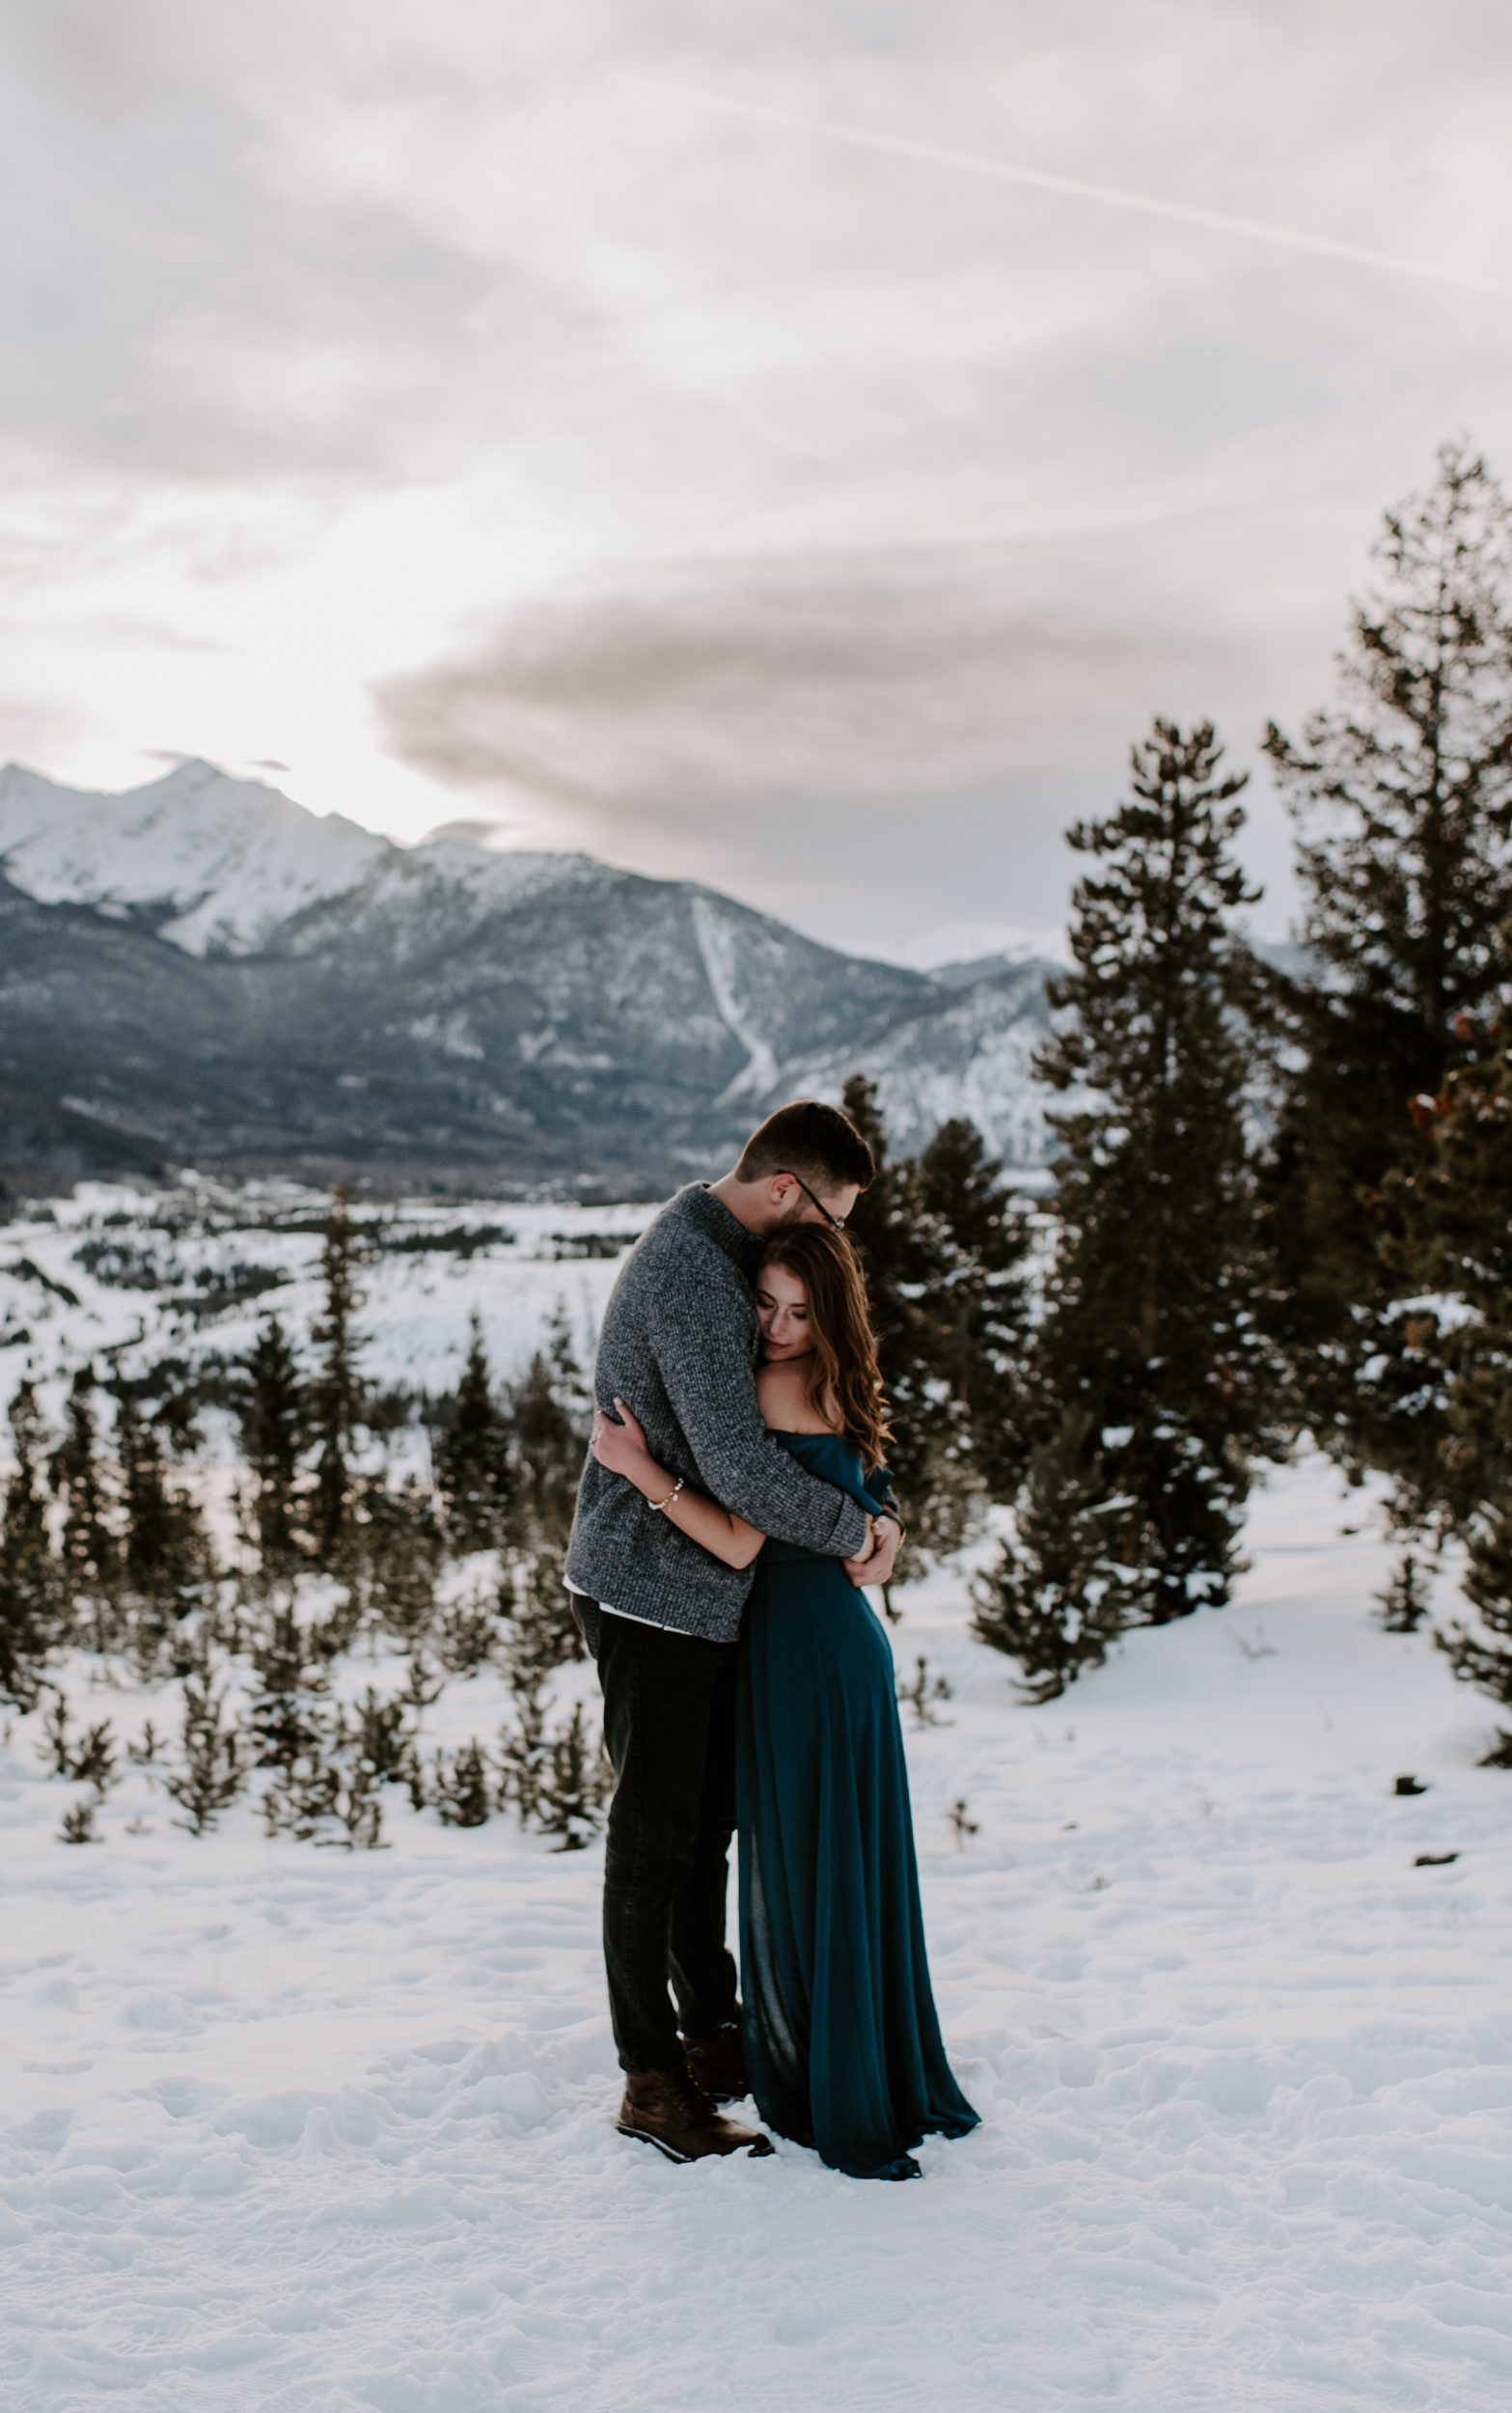 Sunset engagement session photos at Sapphire Point Overlook. Lake Dillon engagement photos. Breckenridge, Colorado winter engagement session photographer.